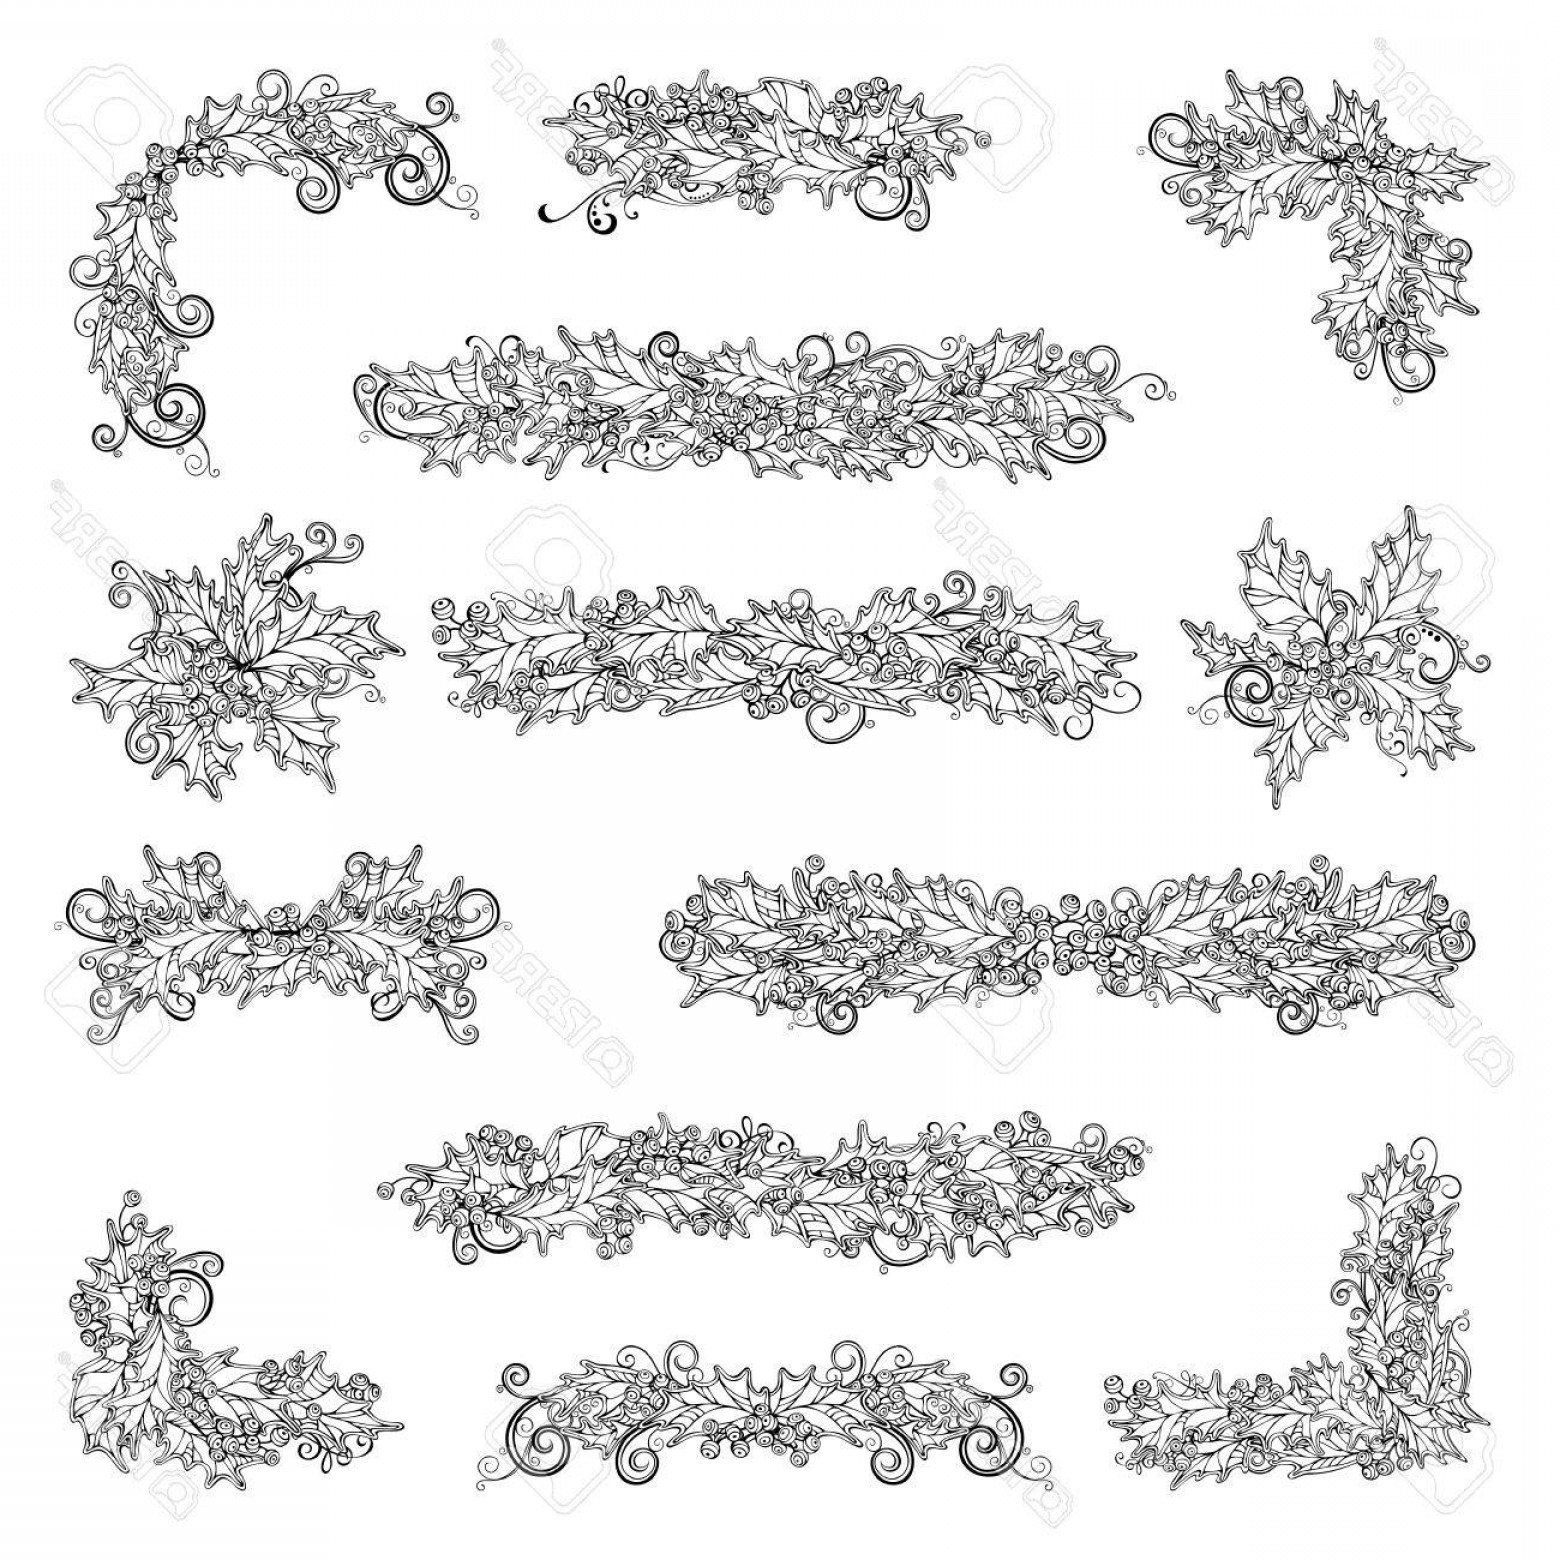 Christmas Divider Vector: Photostock Vector Set Of Holly Berries Page Decorations And Dividers Vector Outlined Christmas Design Elements Isolate